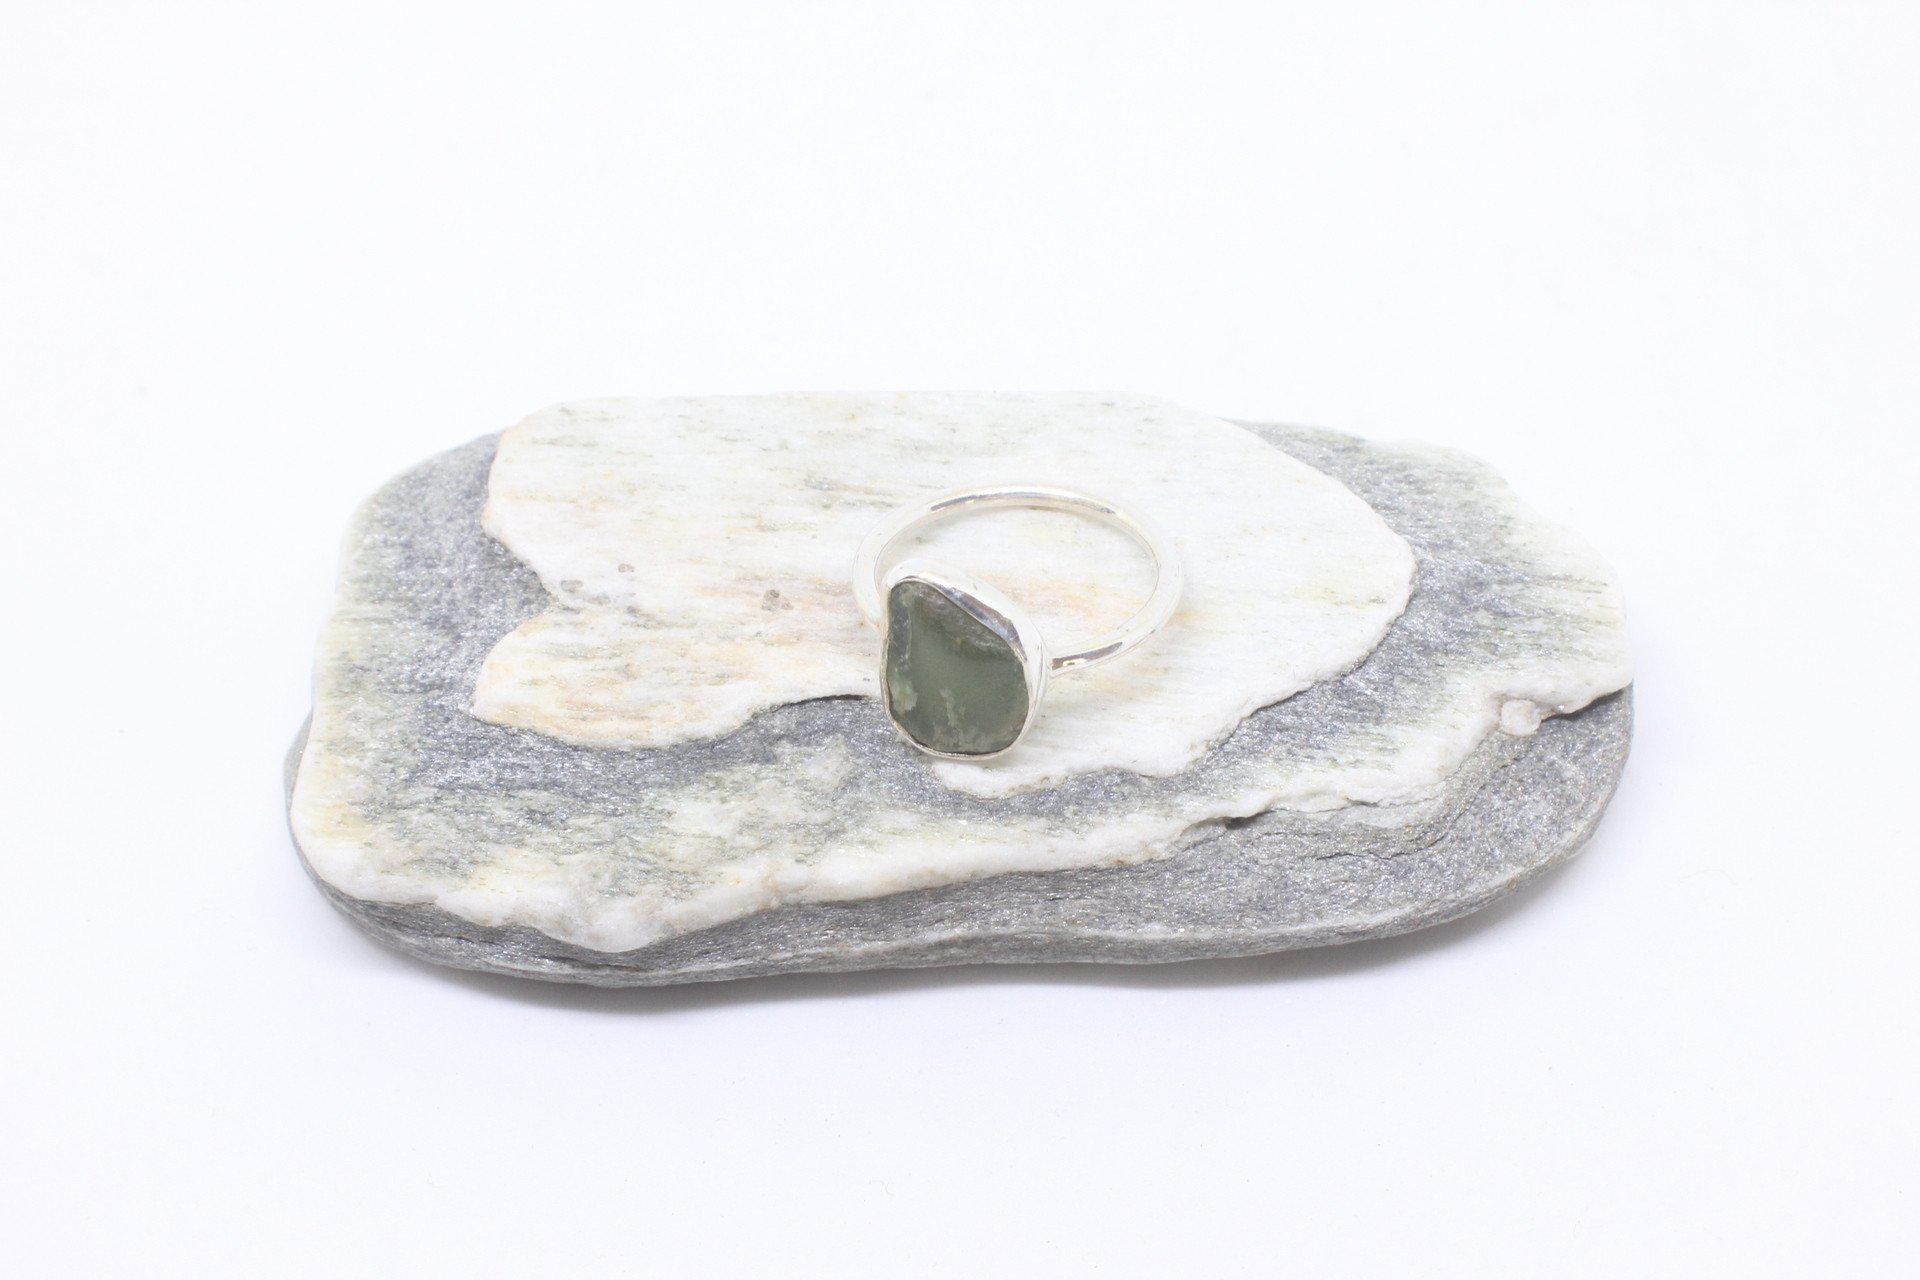 Amiria Silver Greenstone Ring,Jewellery,The Outpost NZ The Outpost NZ, New Zealand, outpost, Queenstown